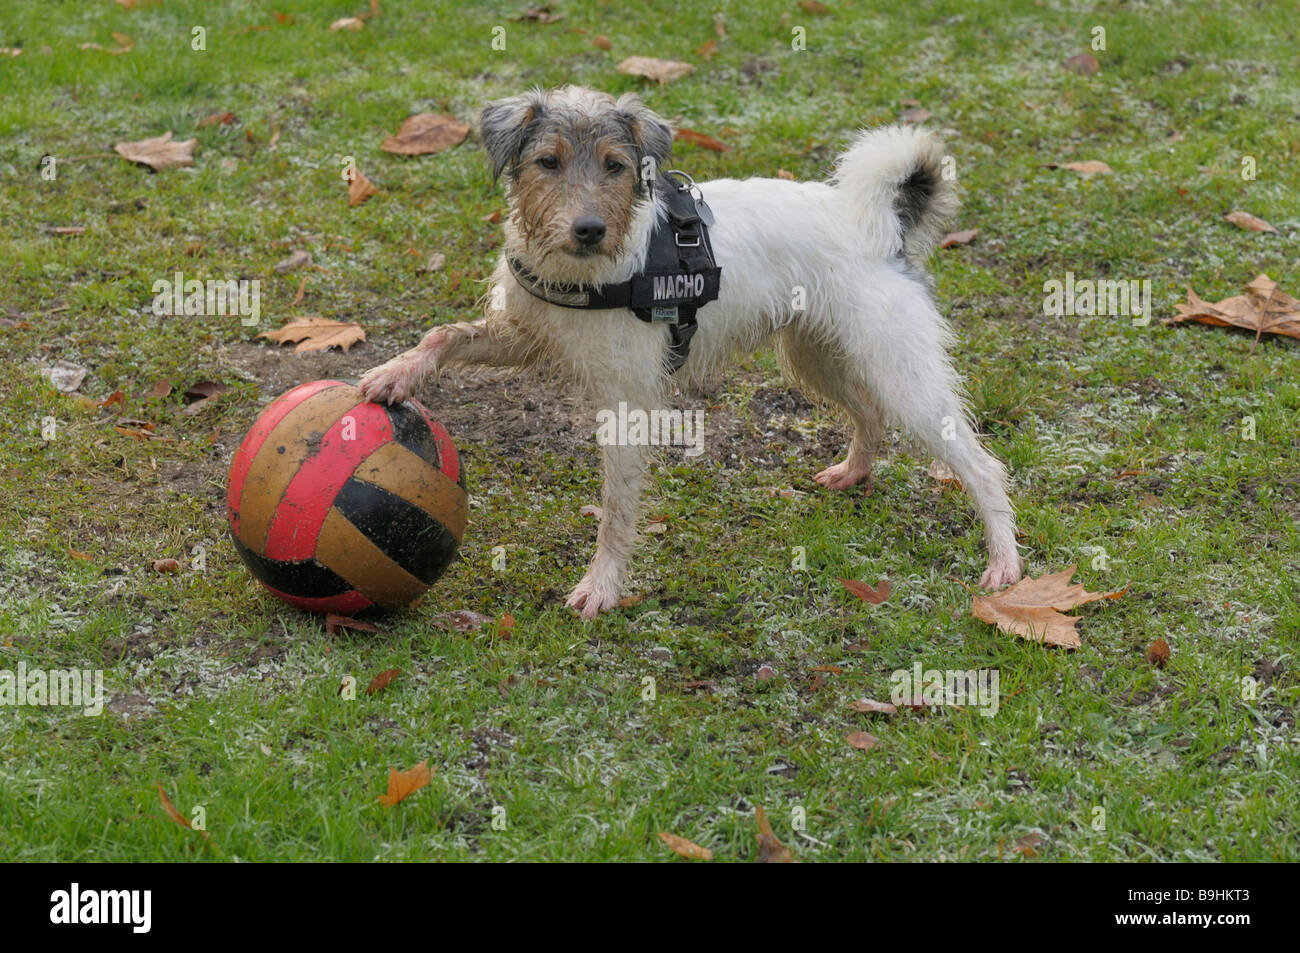 Terrier with one paw on a colourful ball - Stock Image